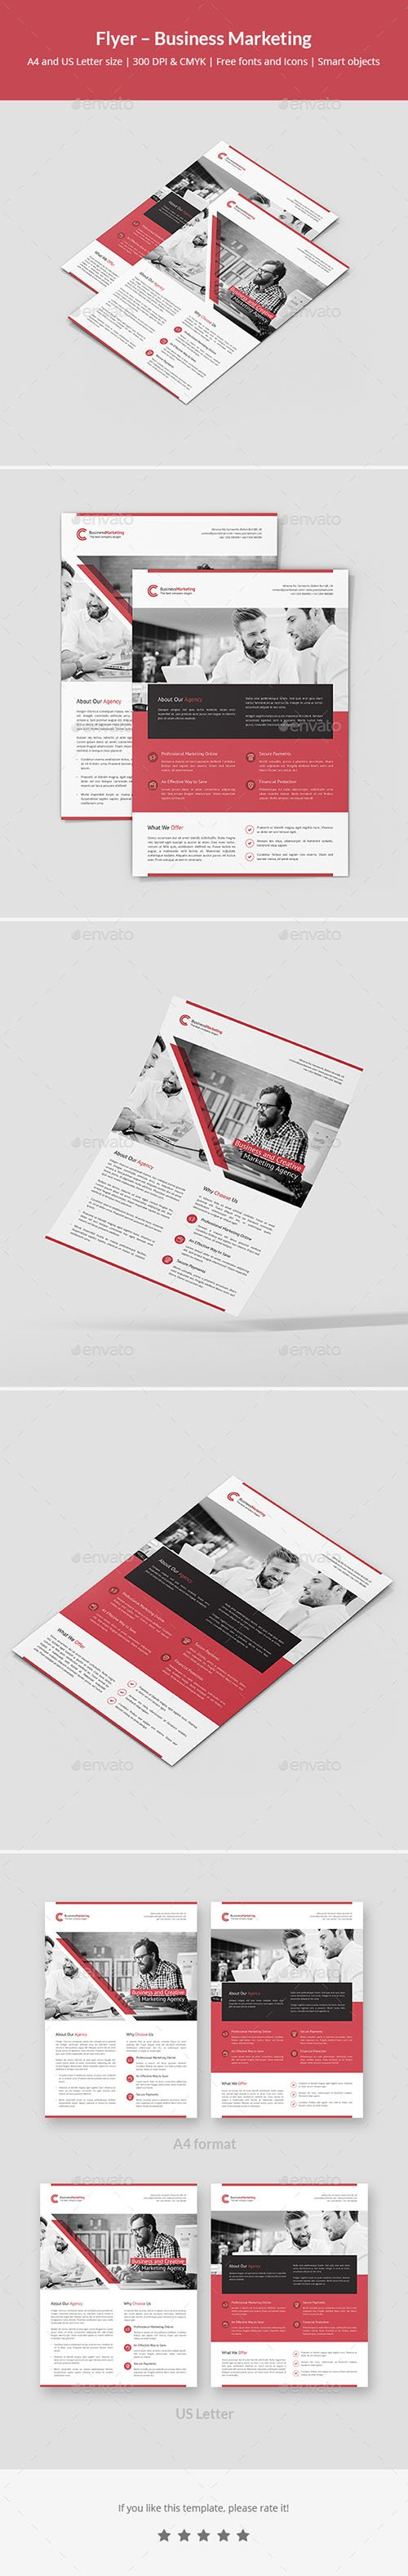 Flyer – Business Marketing 21413689